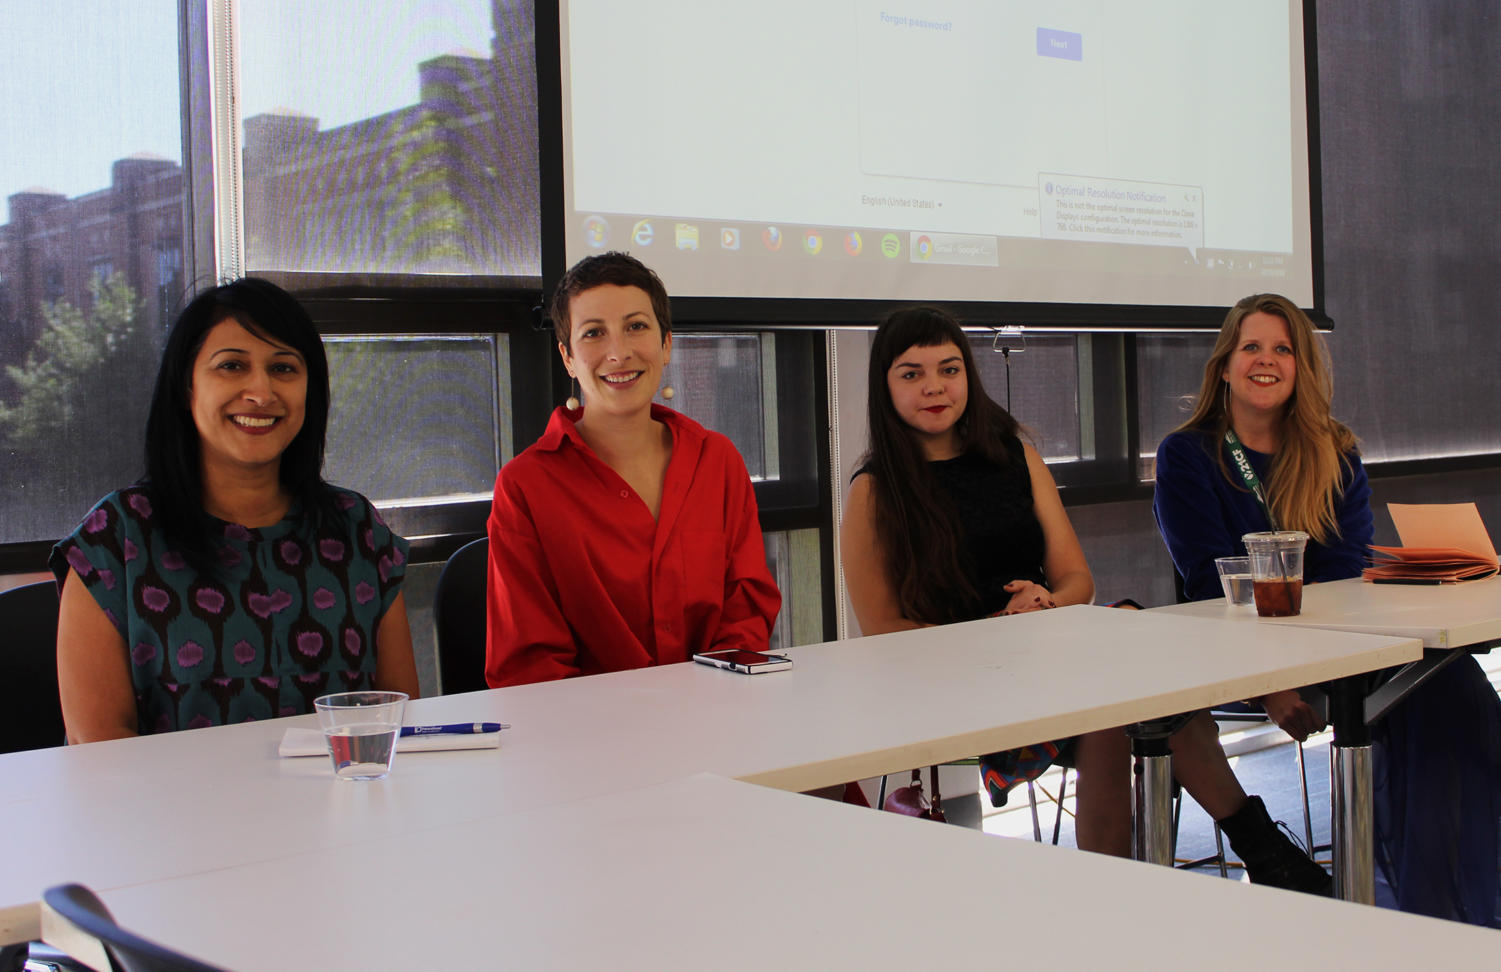 Panelists pose for a picture before beginning their discussion about being female filmmakers. The panelists shared their thoughts on how the film and entertainment industries are becoming more accessible to women and where they see it going in the future. Photo credit: Khayla Gaston